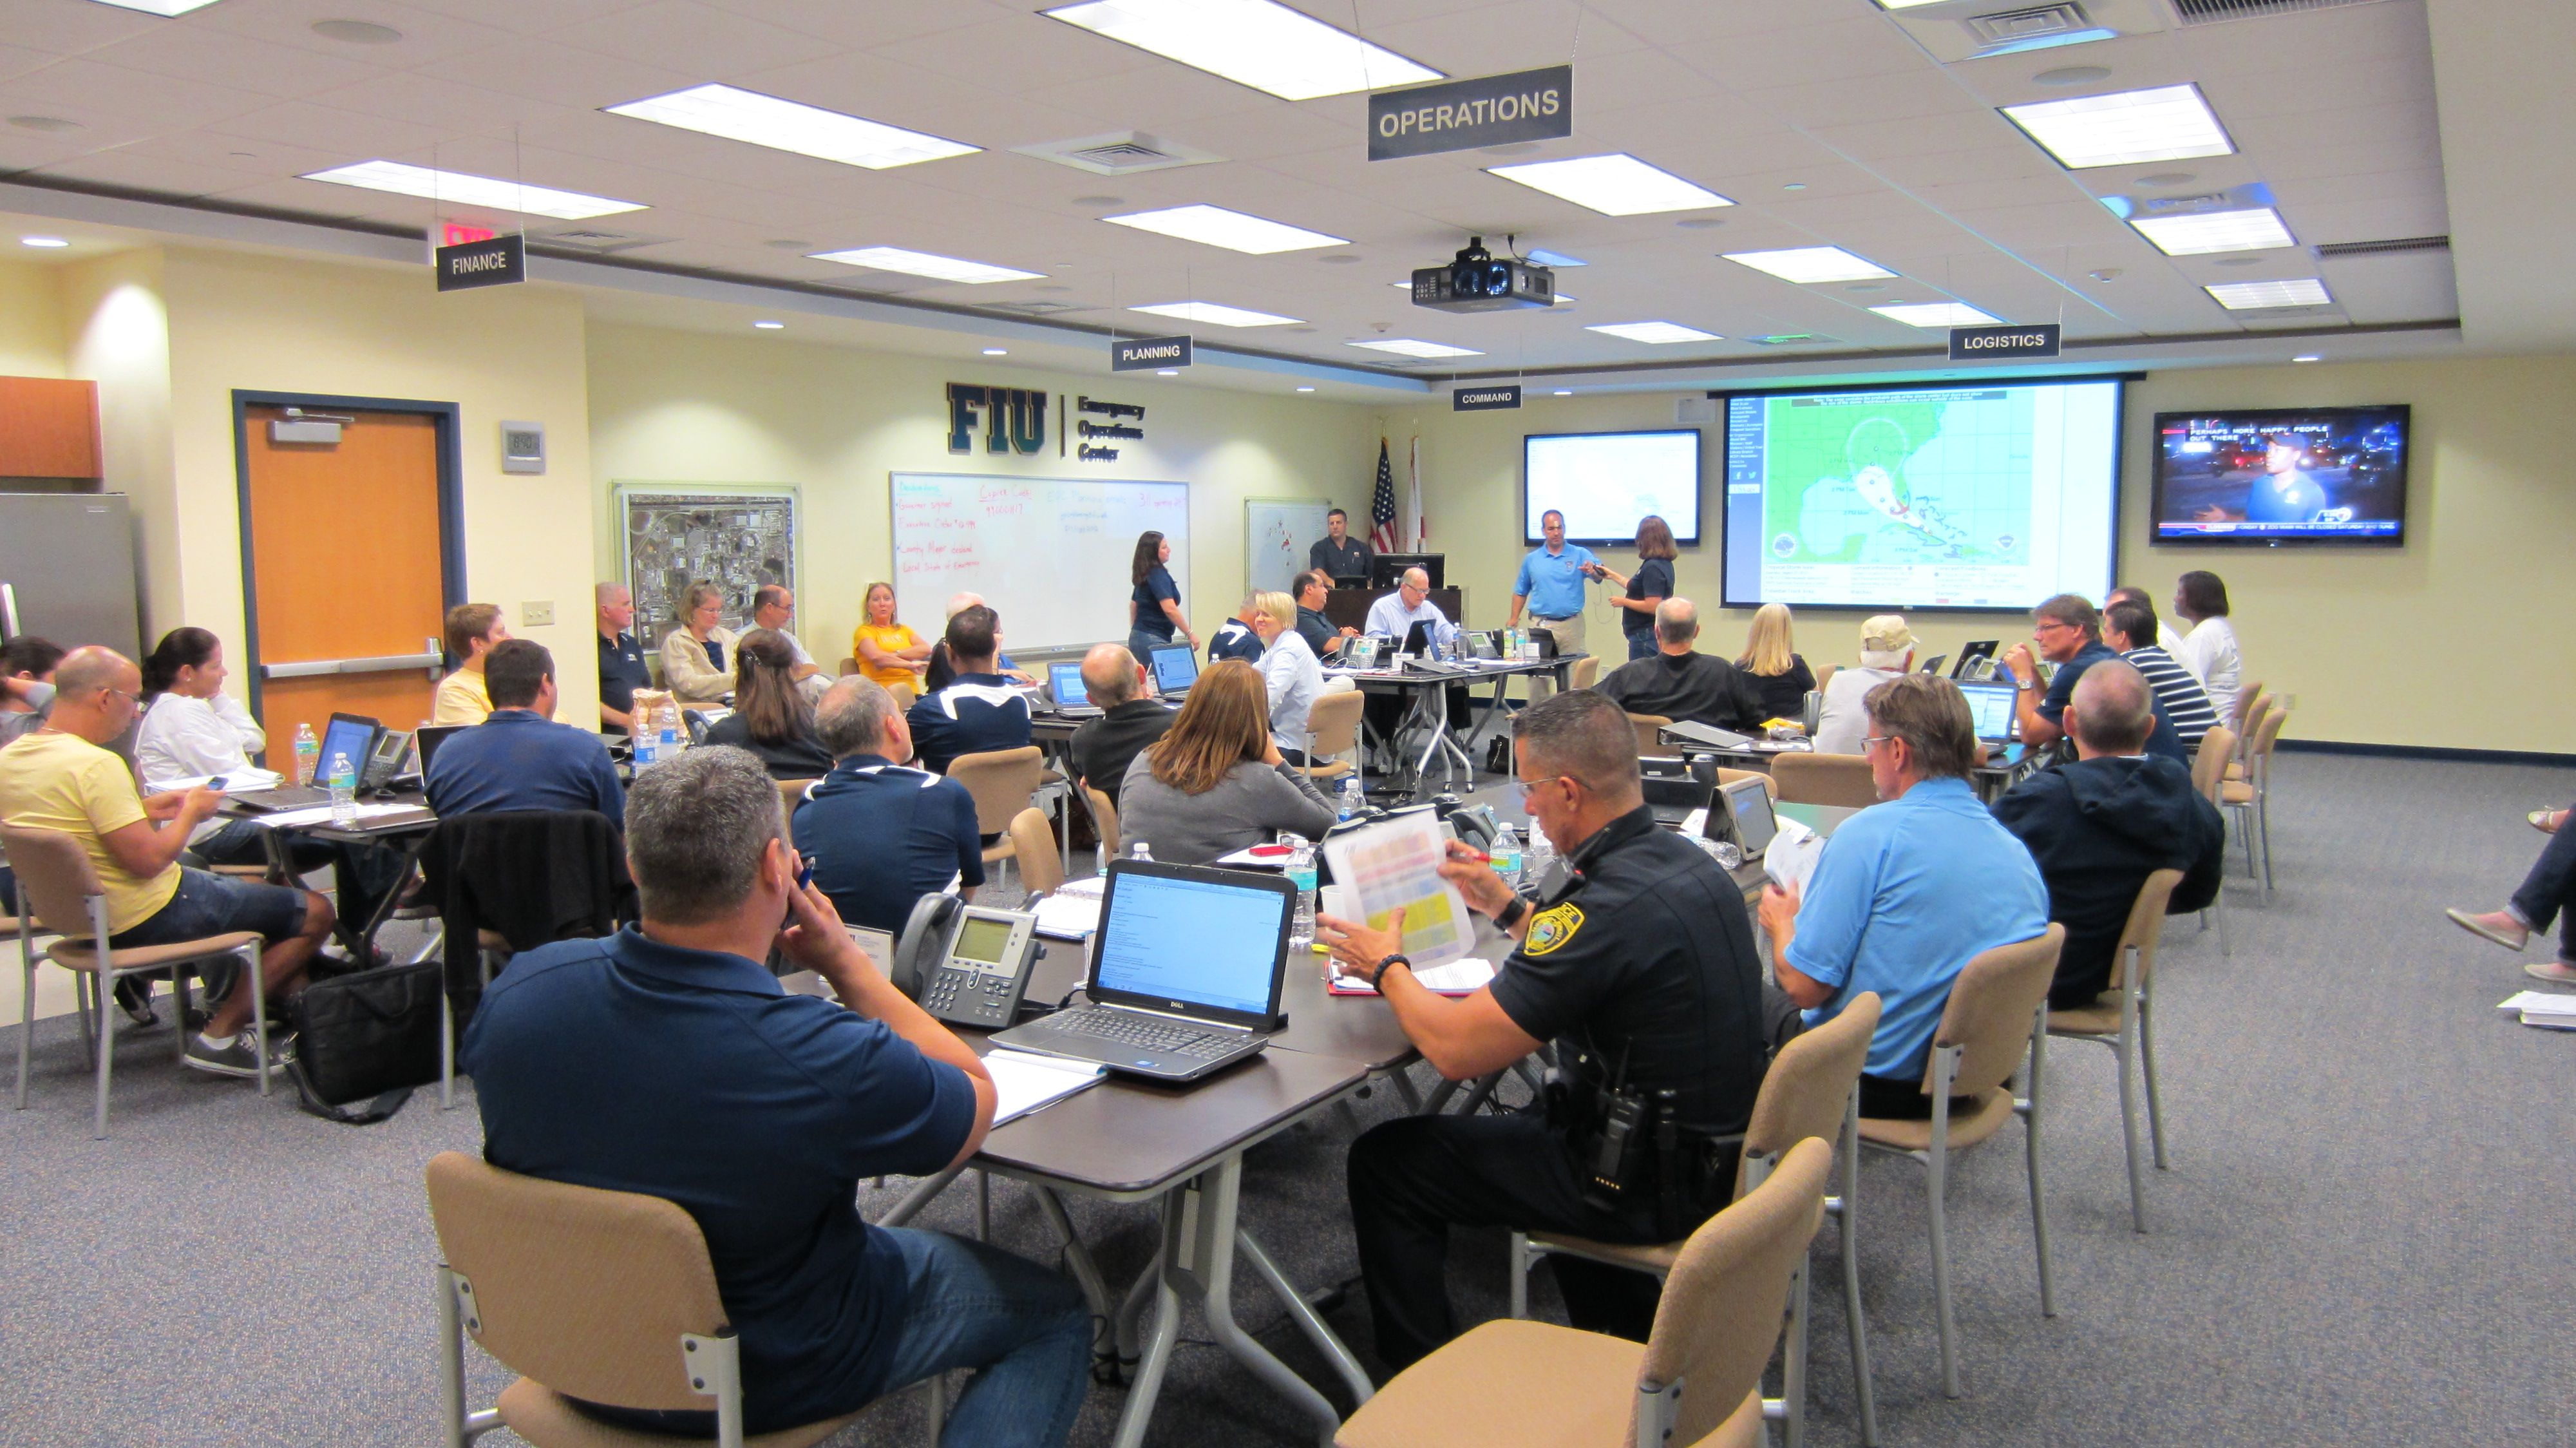 University leaders and personnel from the Department of Emergency Management share information and monitor conditions during the the South Florida approach of Tropical Storm Isaac.